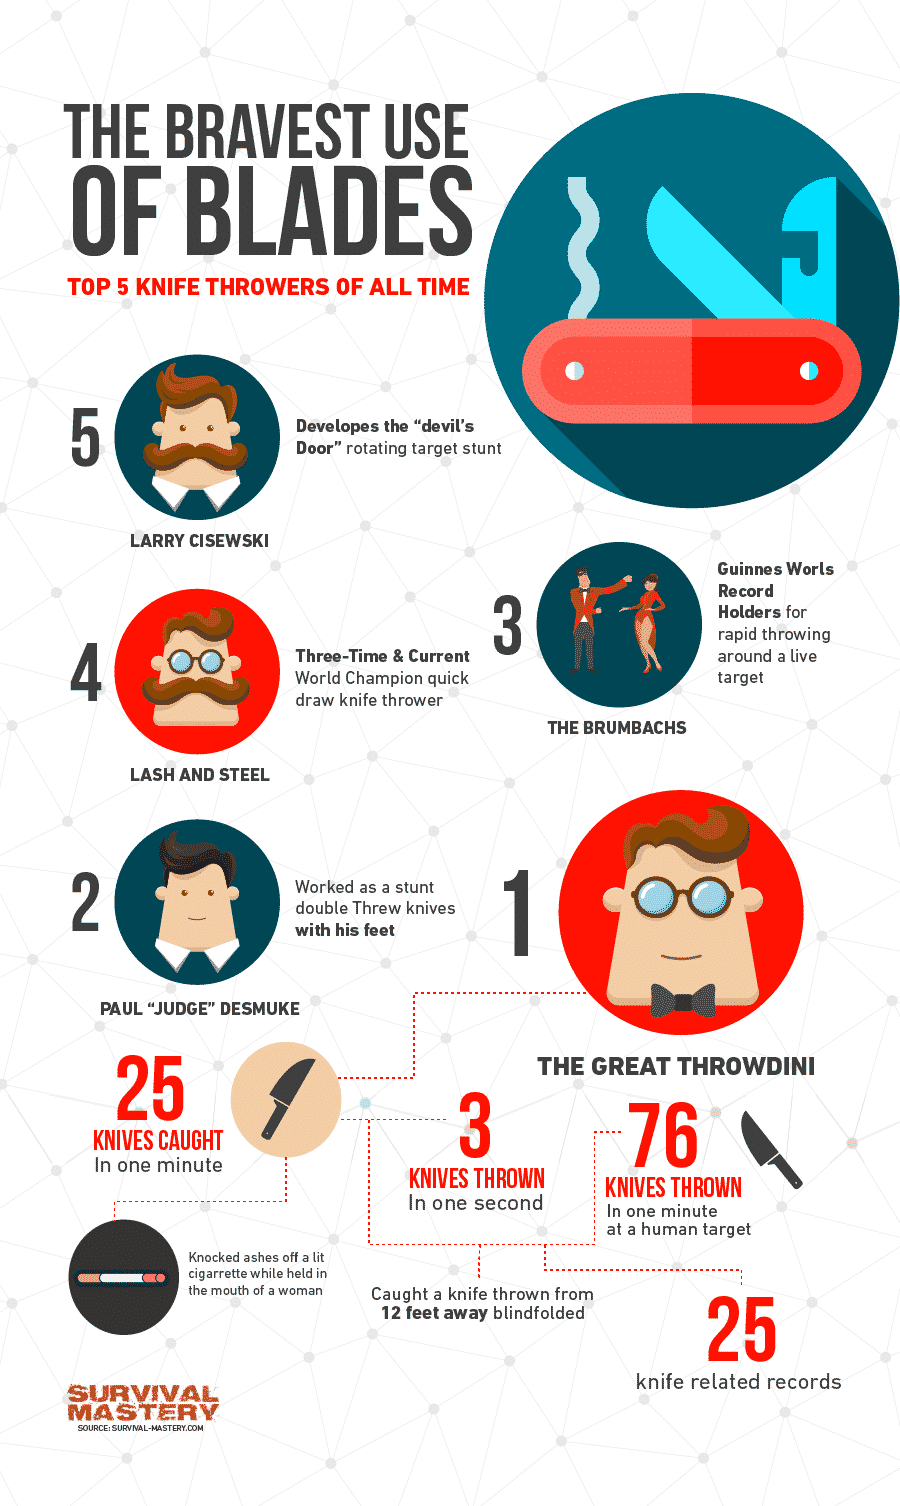 Bravest use of blades infographic